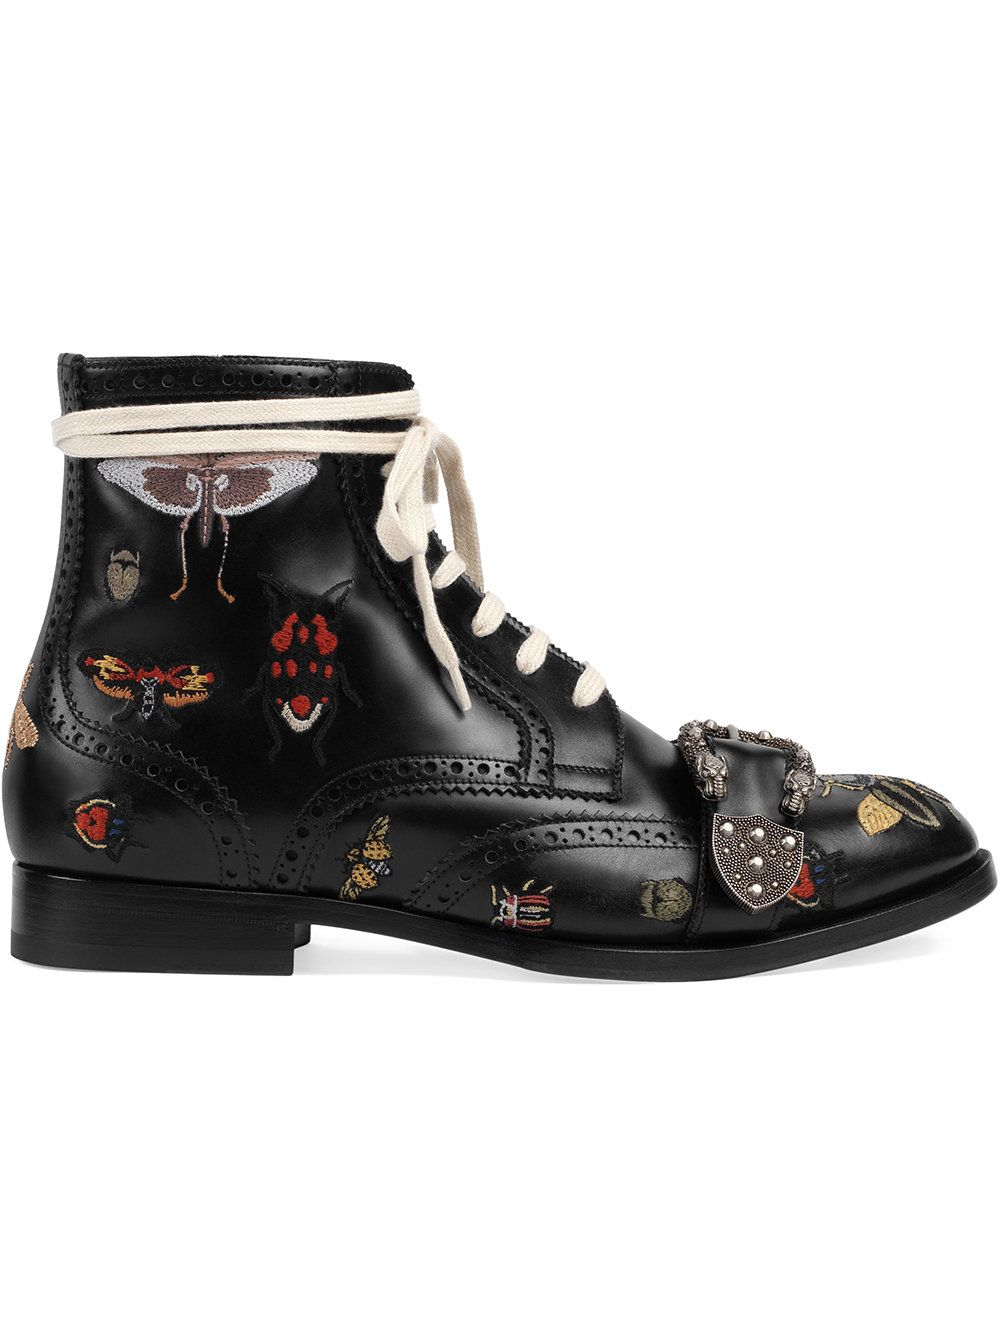 297c868b2 GUCCI | Queercore embroidered brogue boots #Shoes #GUCCI | Fashion ...